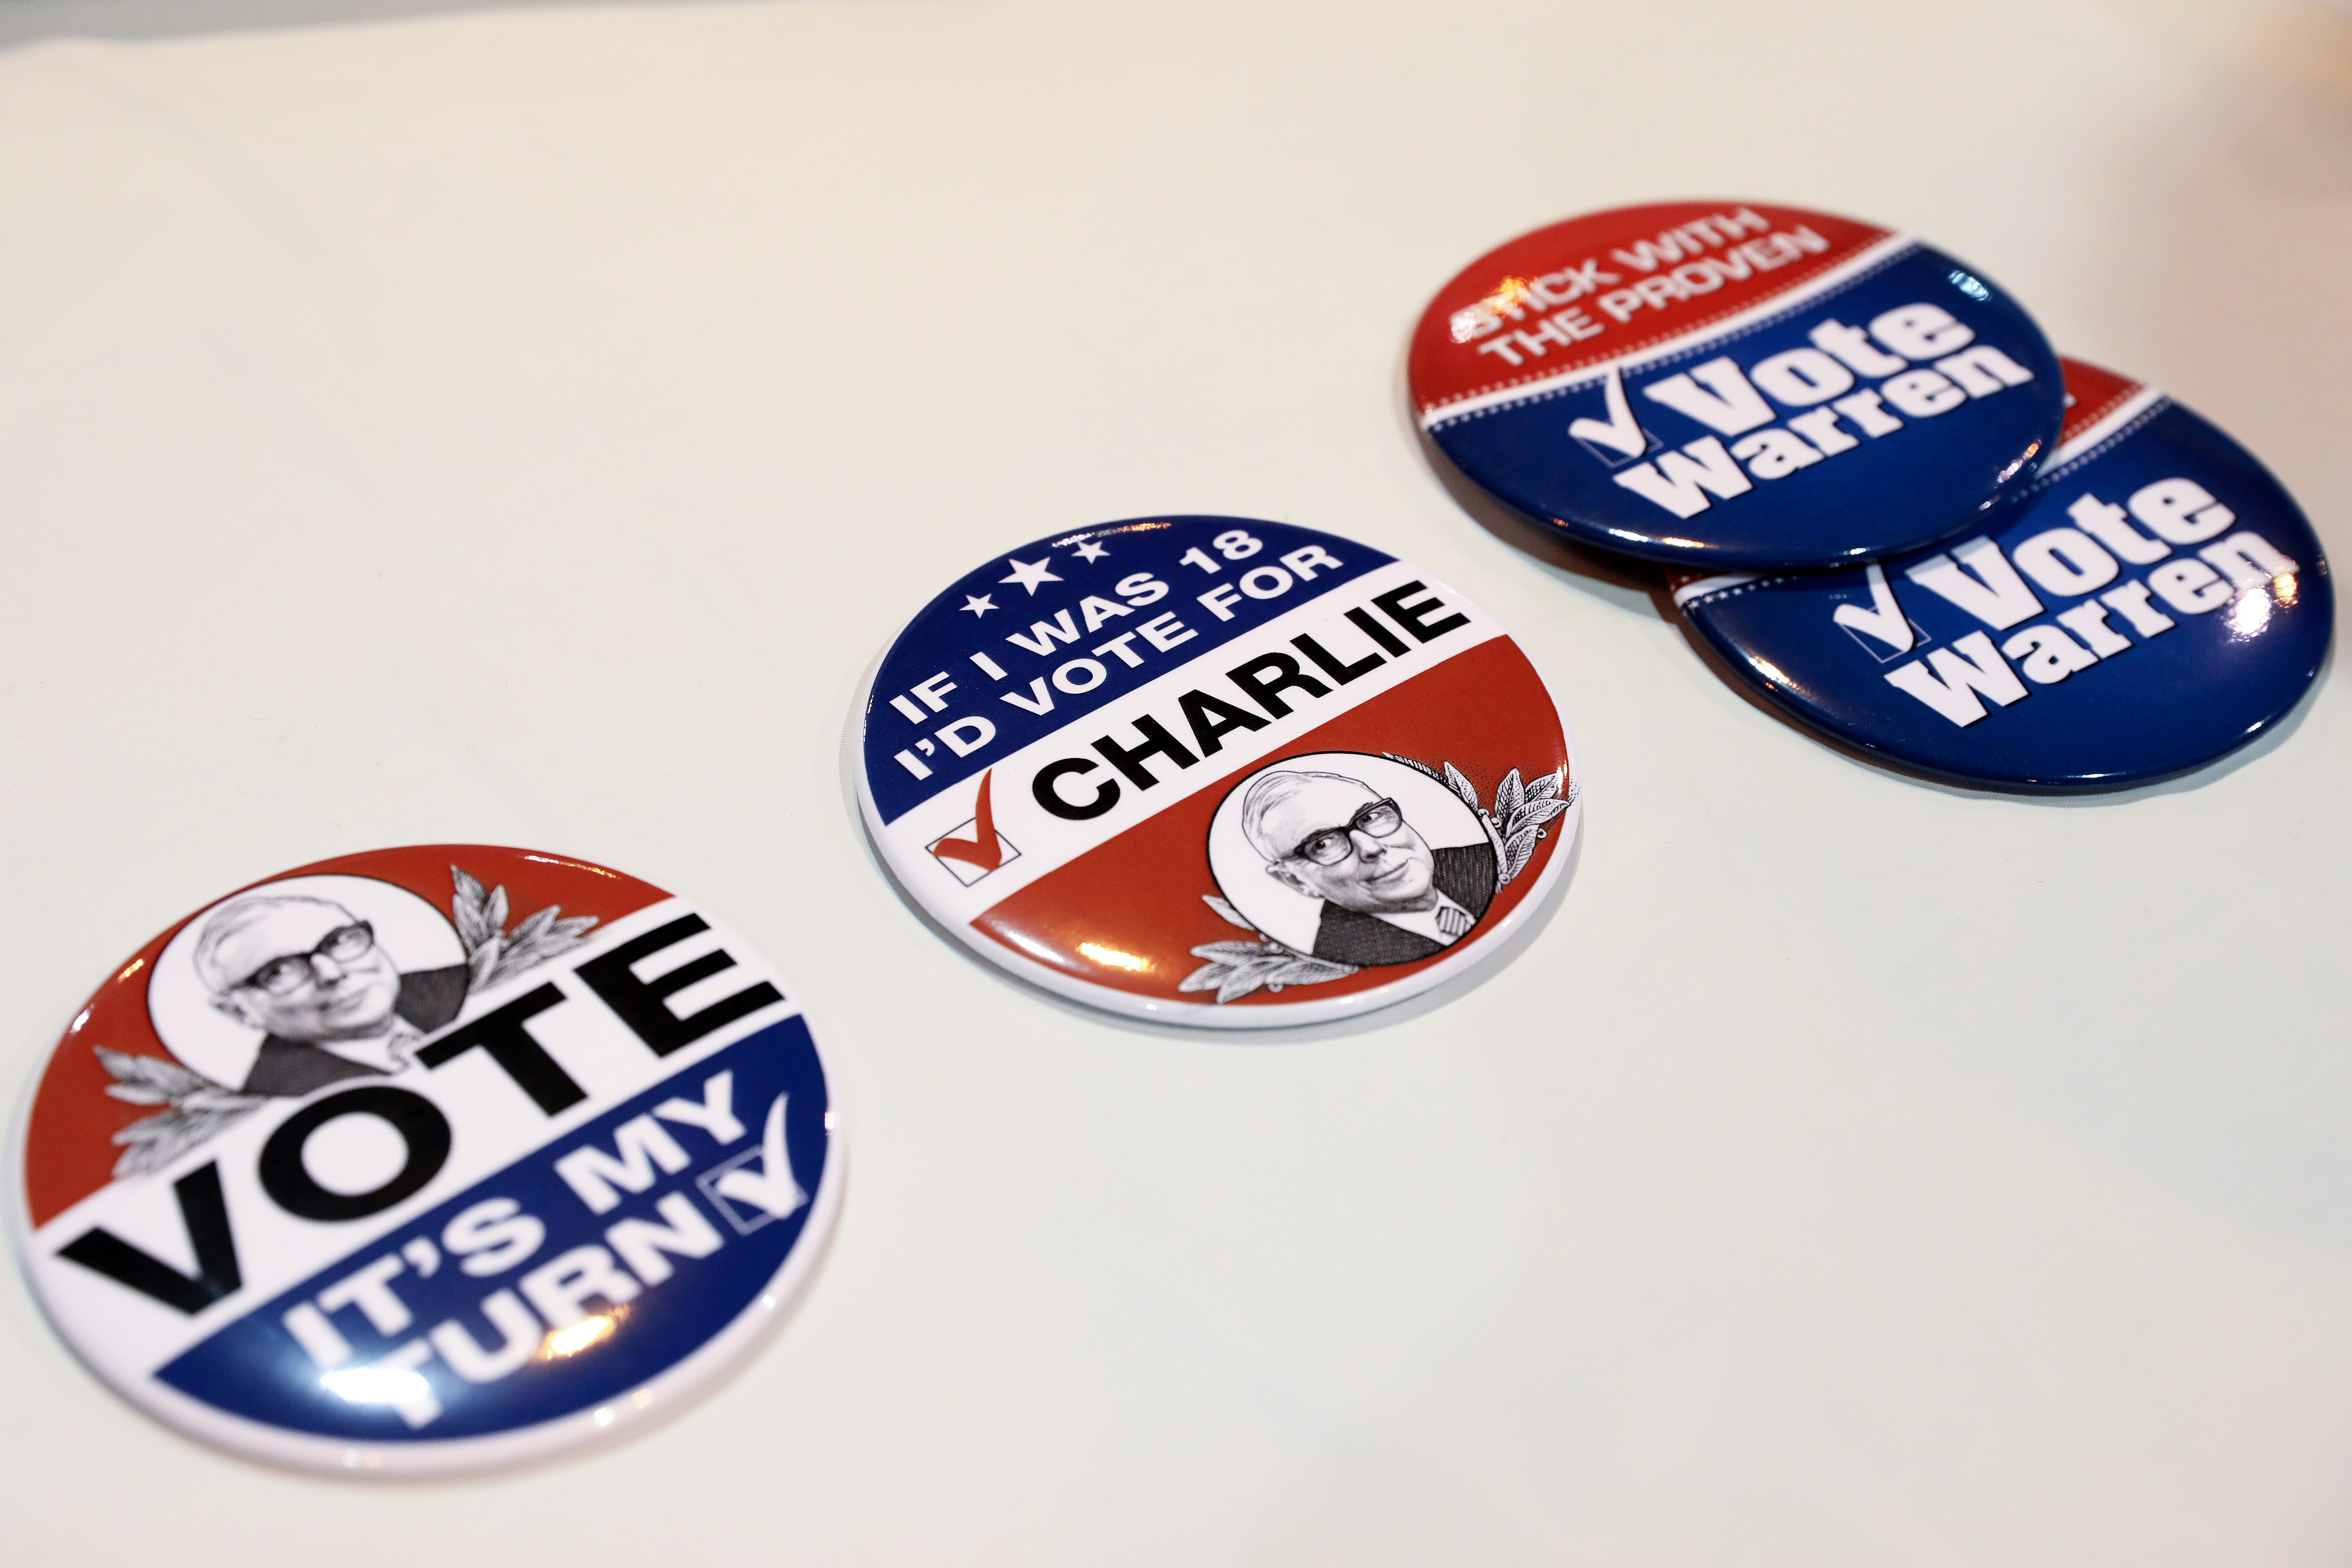 Buttons in a mock campaign to elect Berkshire Hathaway Vice Chairman Charlie Munger as Chairman are pictured at the annual Berkshire Hathaway shareholder meeting in Omaha, Nebraska, U.S., May 4, 2019. REUTERS/Scott Morgan